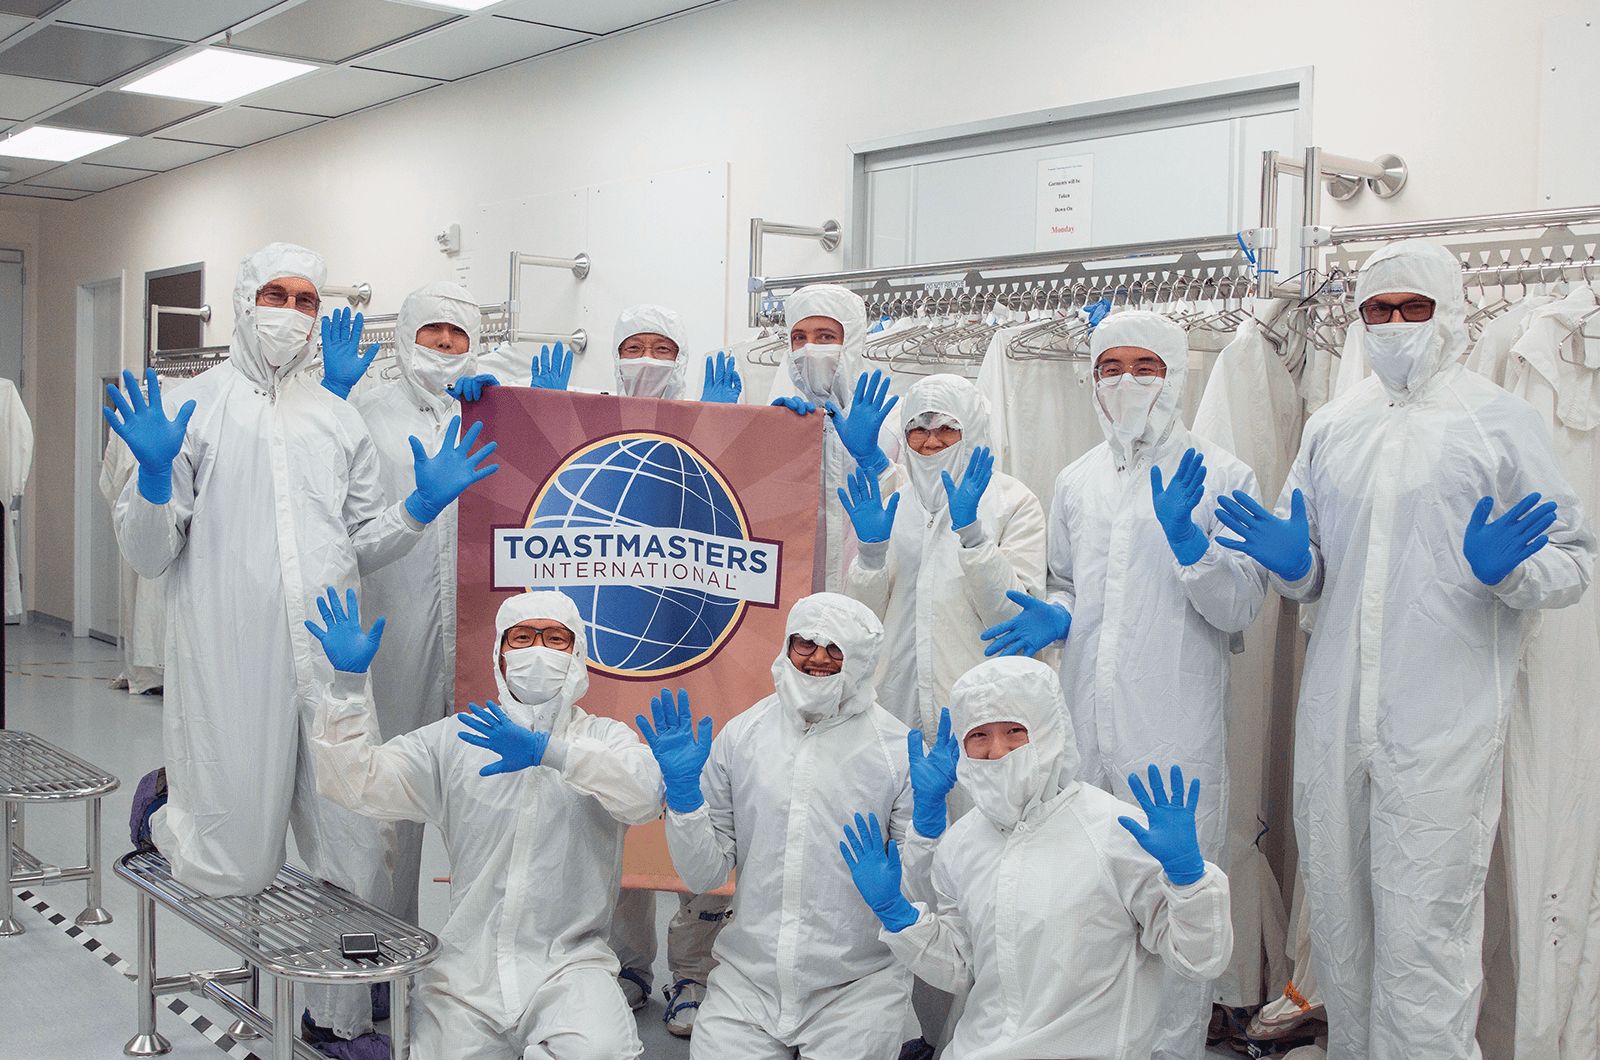 Group of Toastmasters dressed in white suits and blue masks in cleaning room